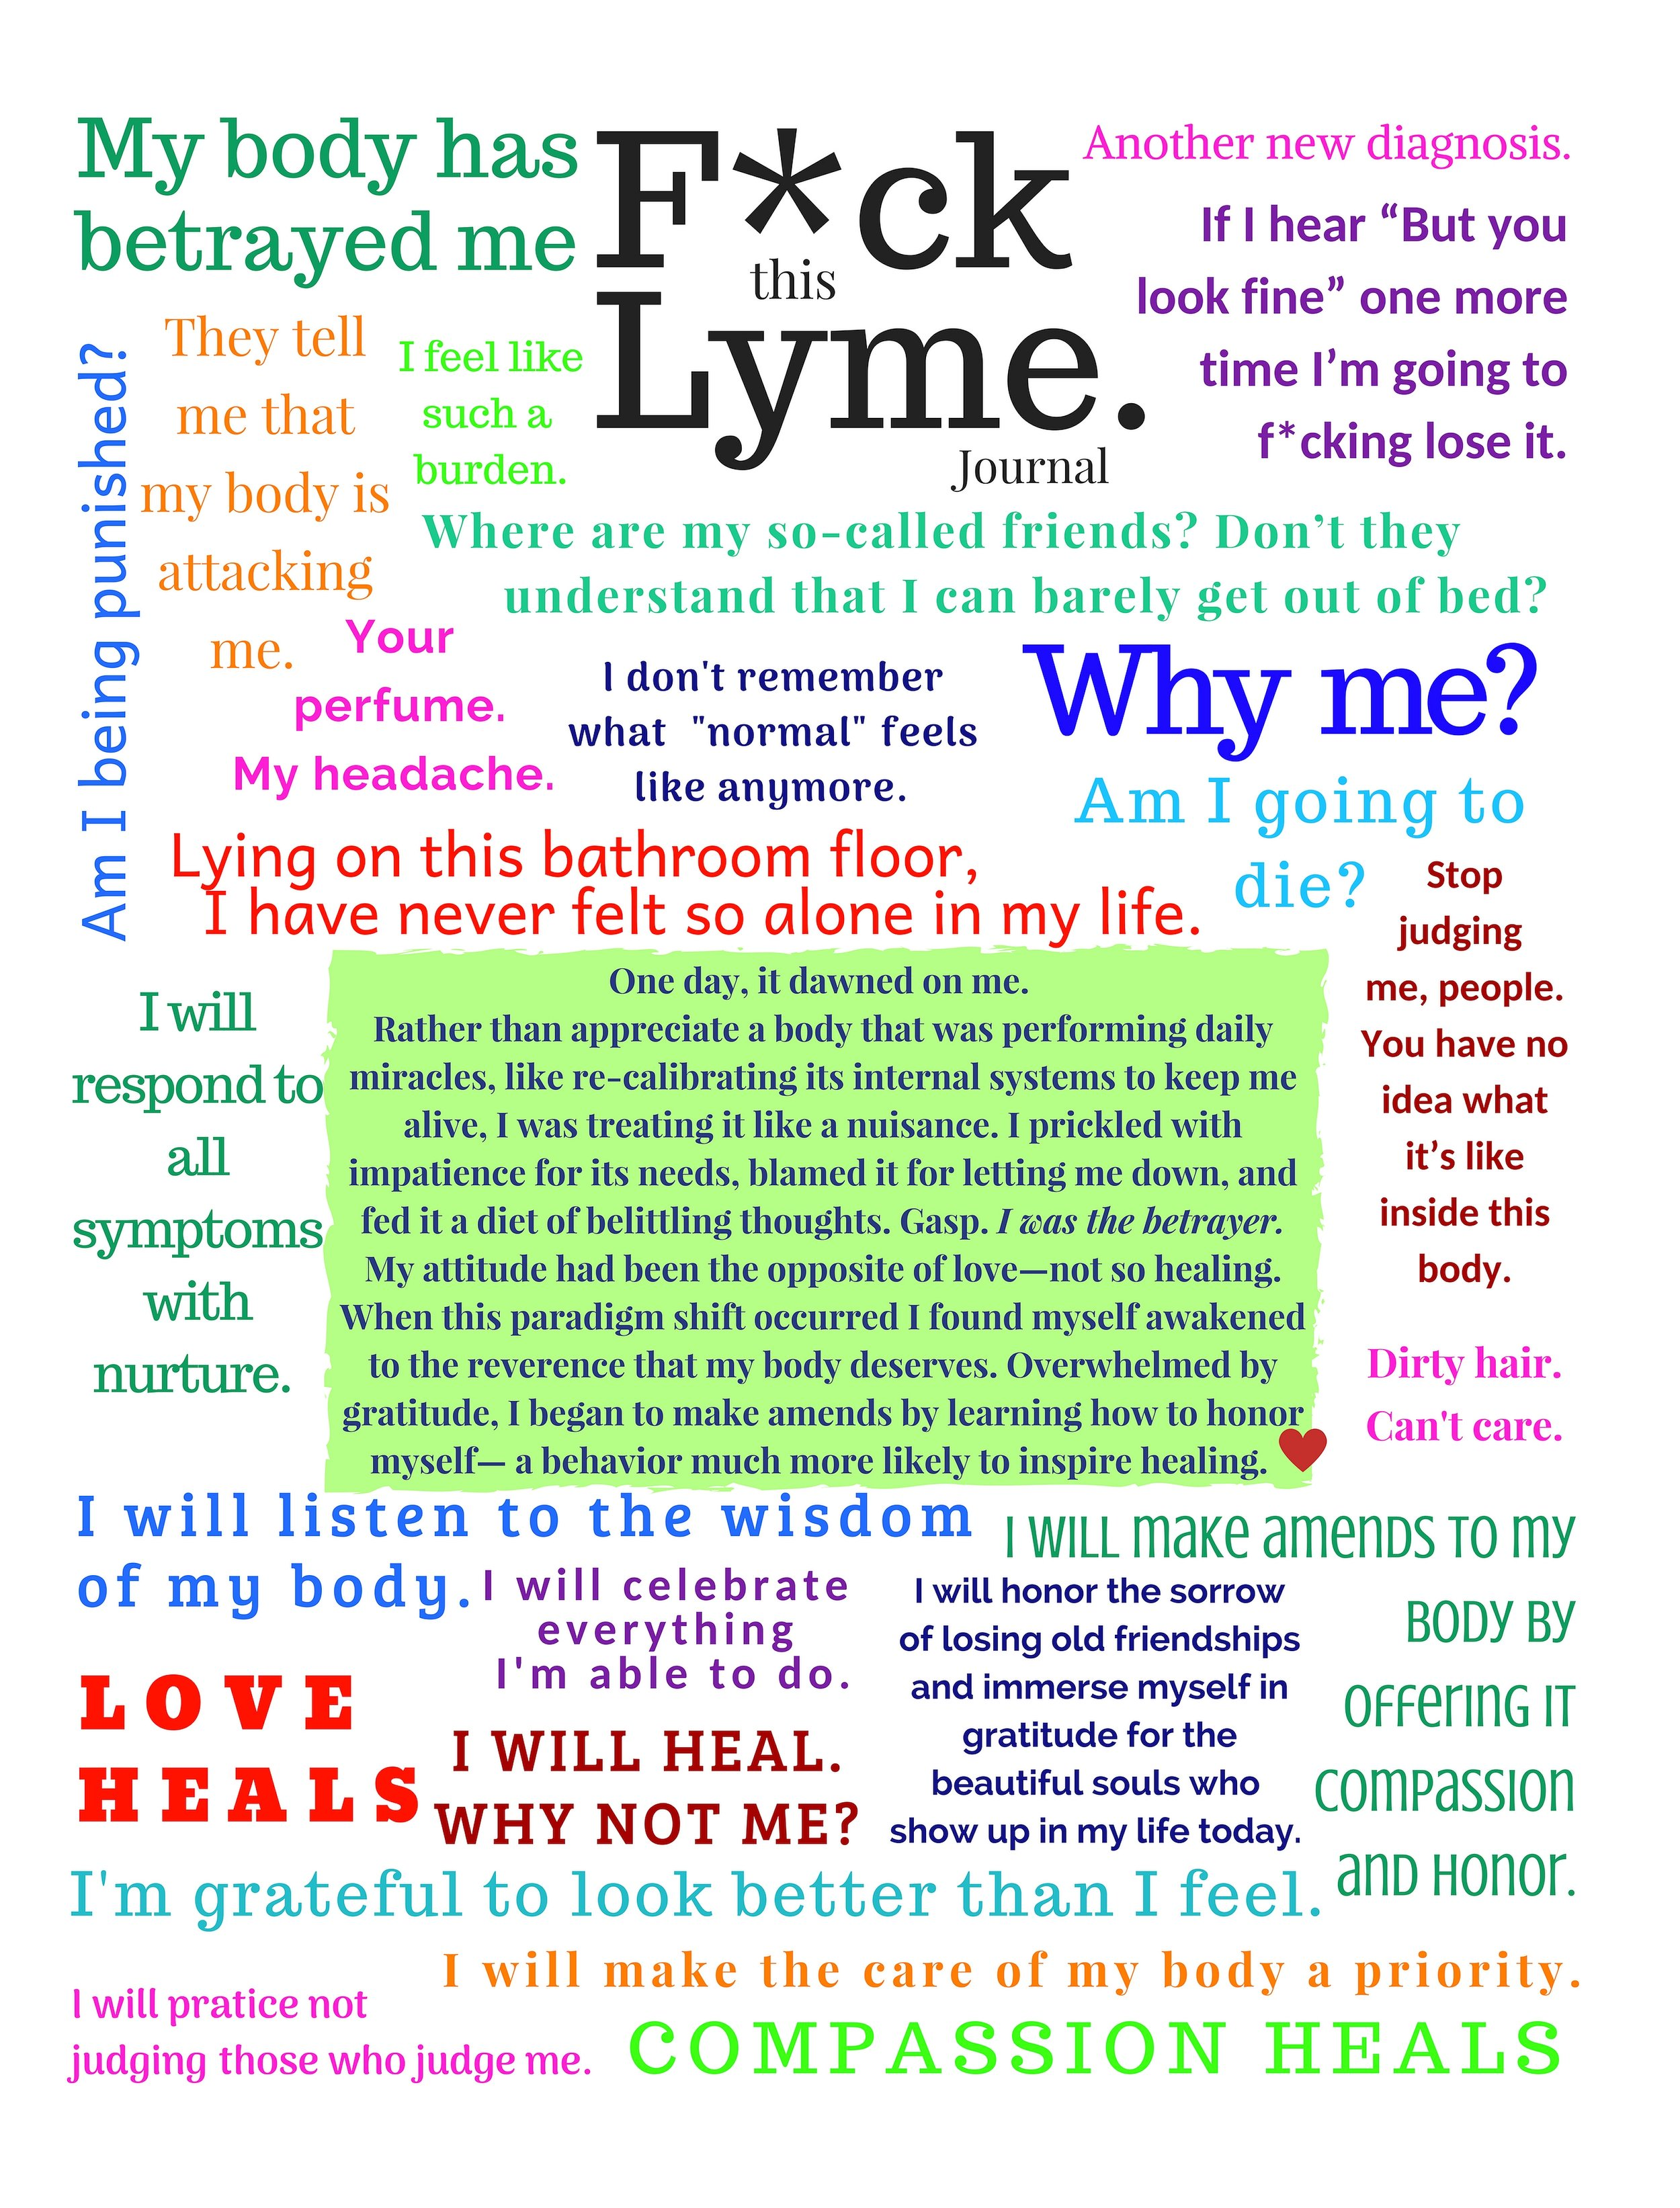 Fuck Lyme, F*ck Lyme Journal by Kimberly Ahri